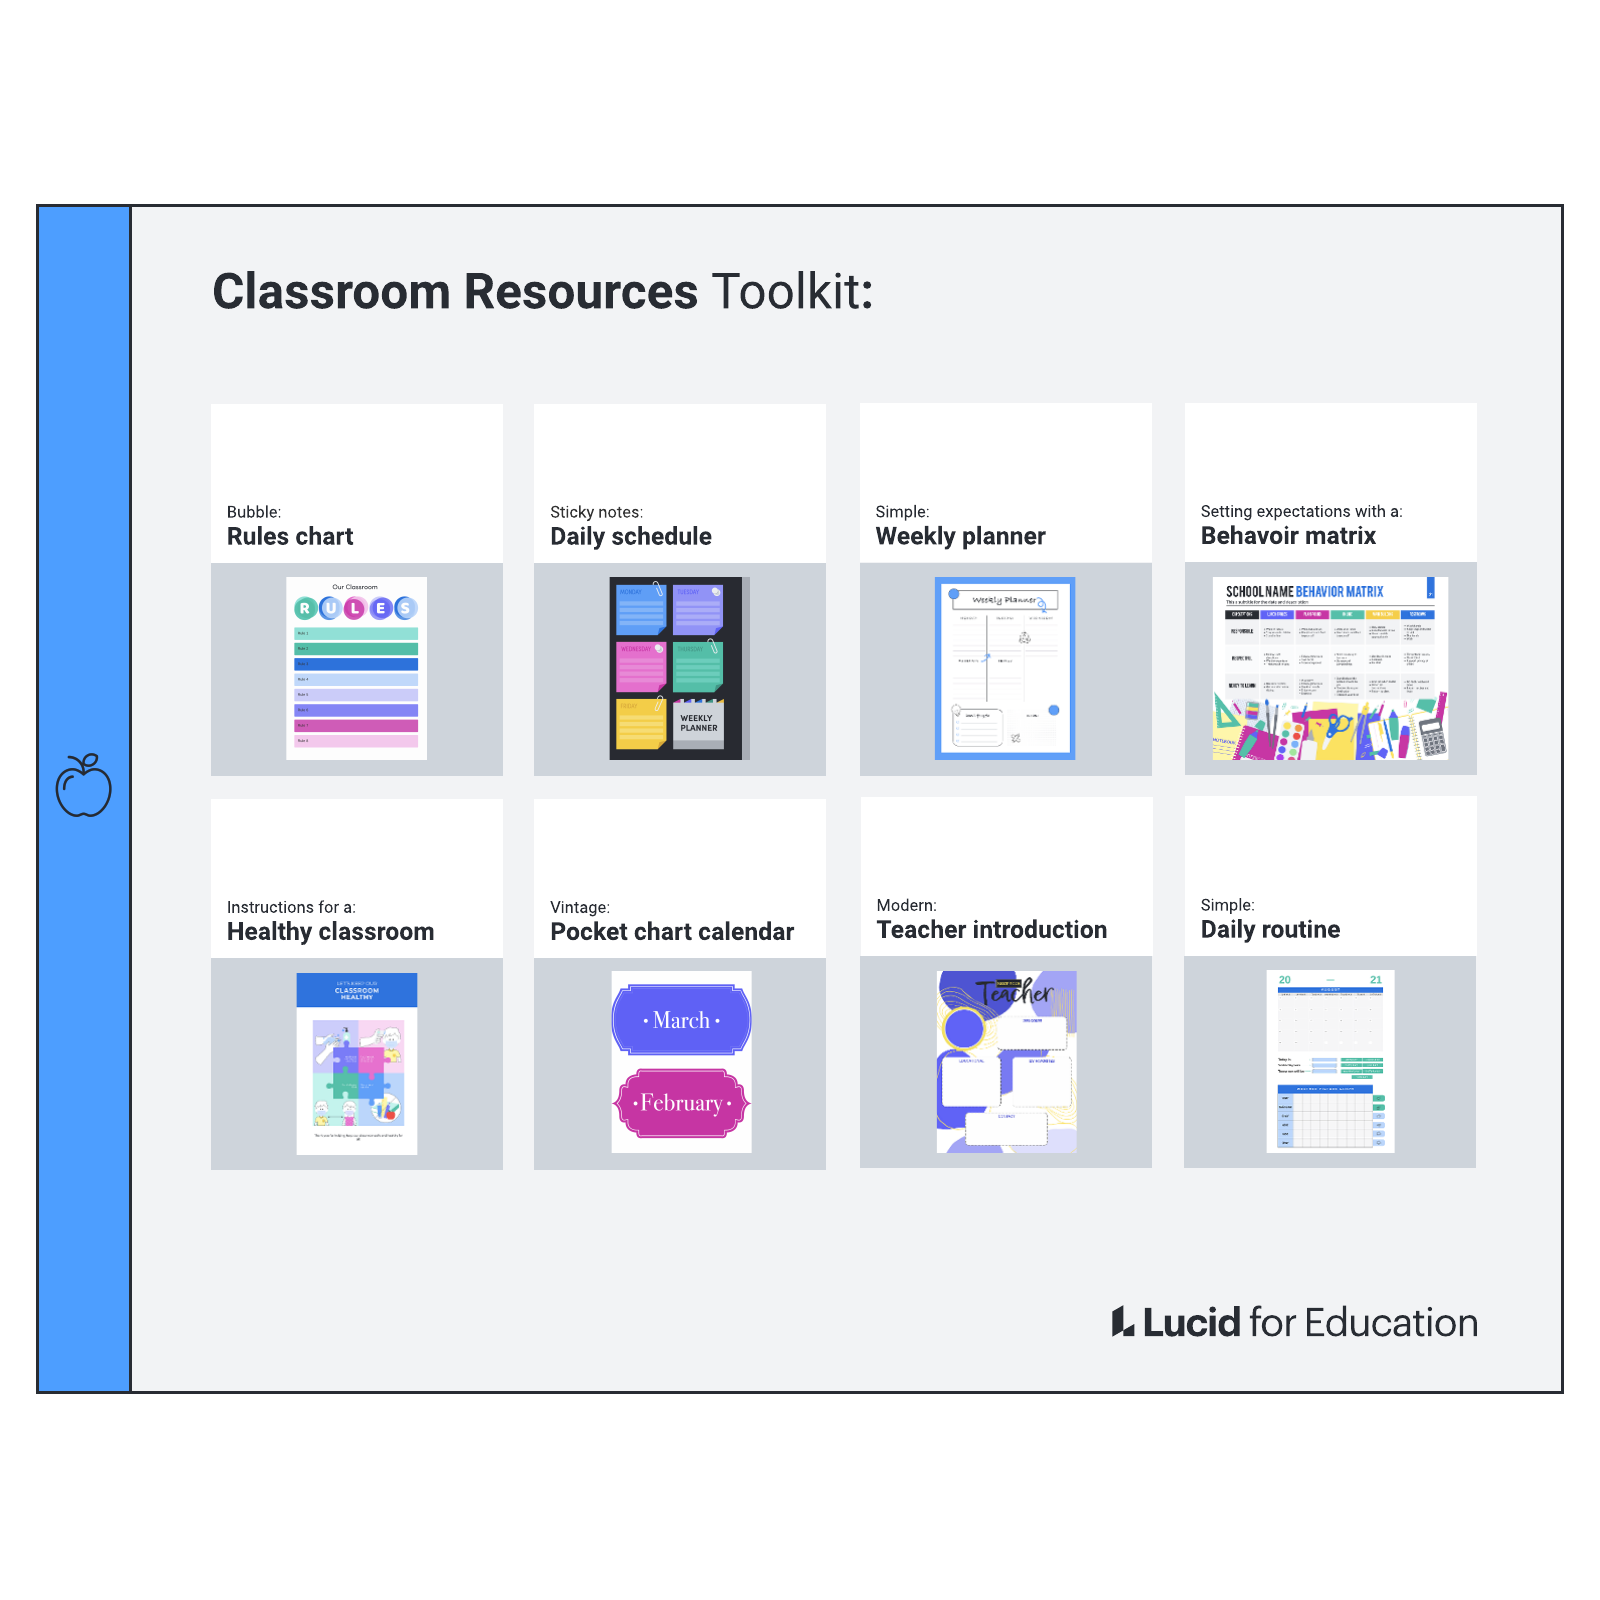 Classroom Resources Toolkit